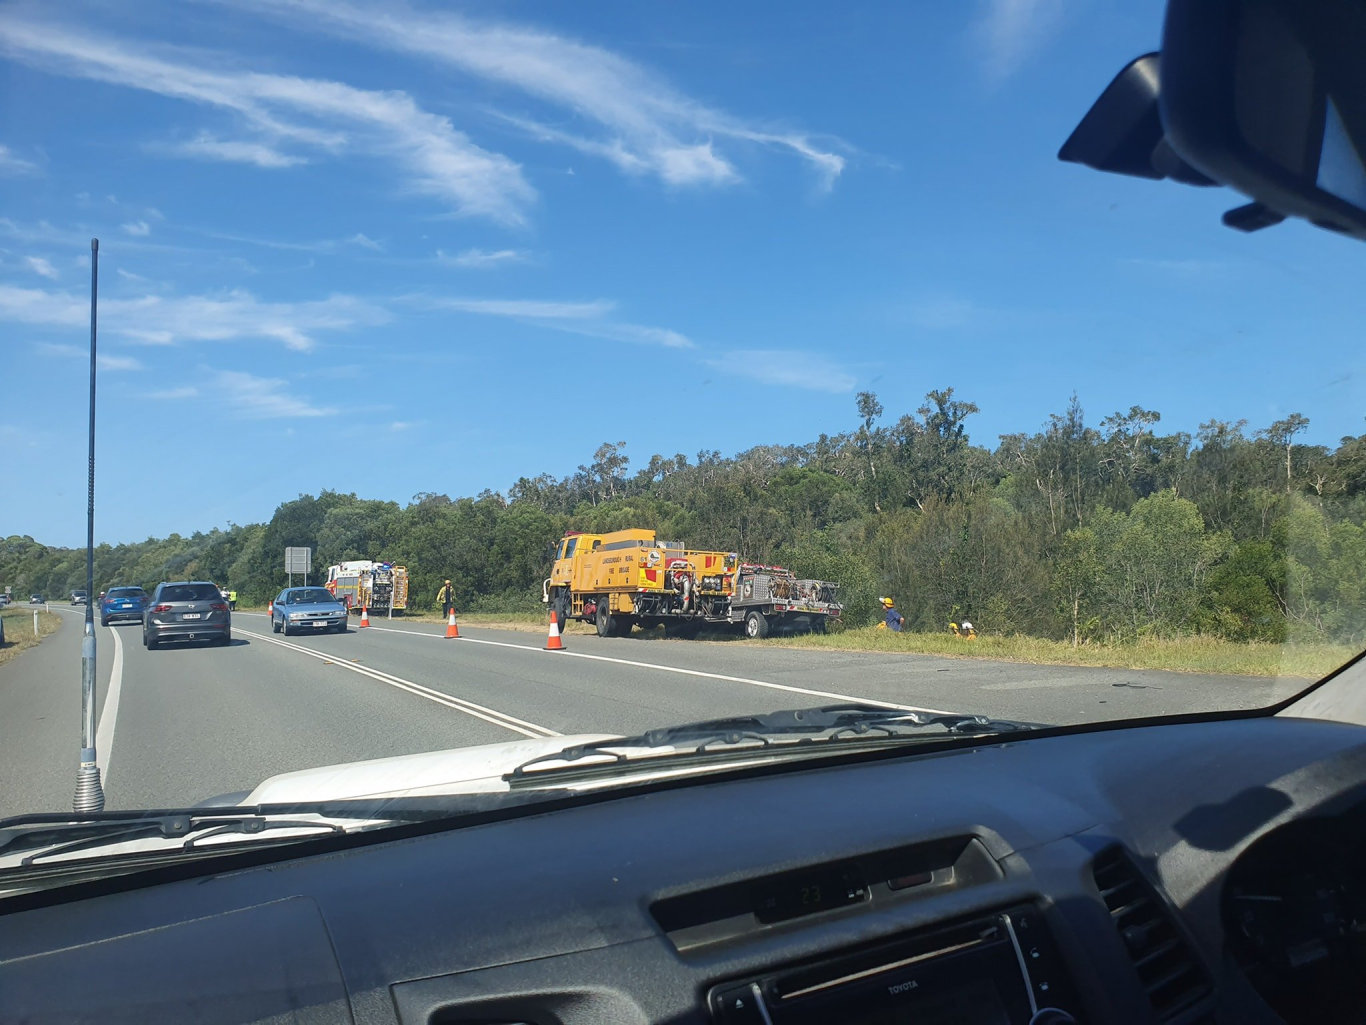 Firefighters responding to reports of a large grassfire which has broken out alongside Caloundra-Mooloolaba Road in Meridan Plains this afternoon. Photo: Bridget Ward